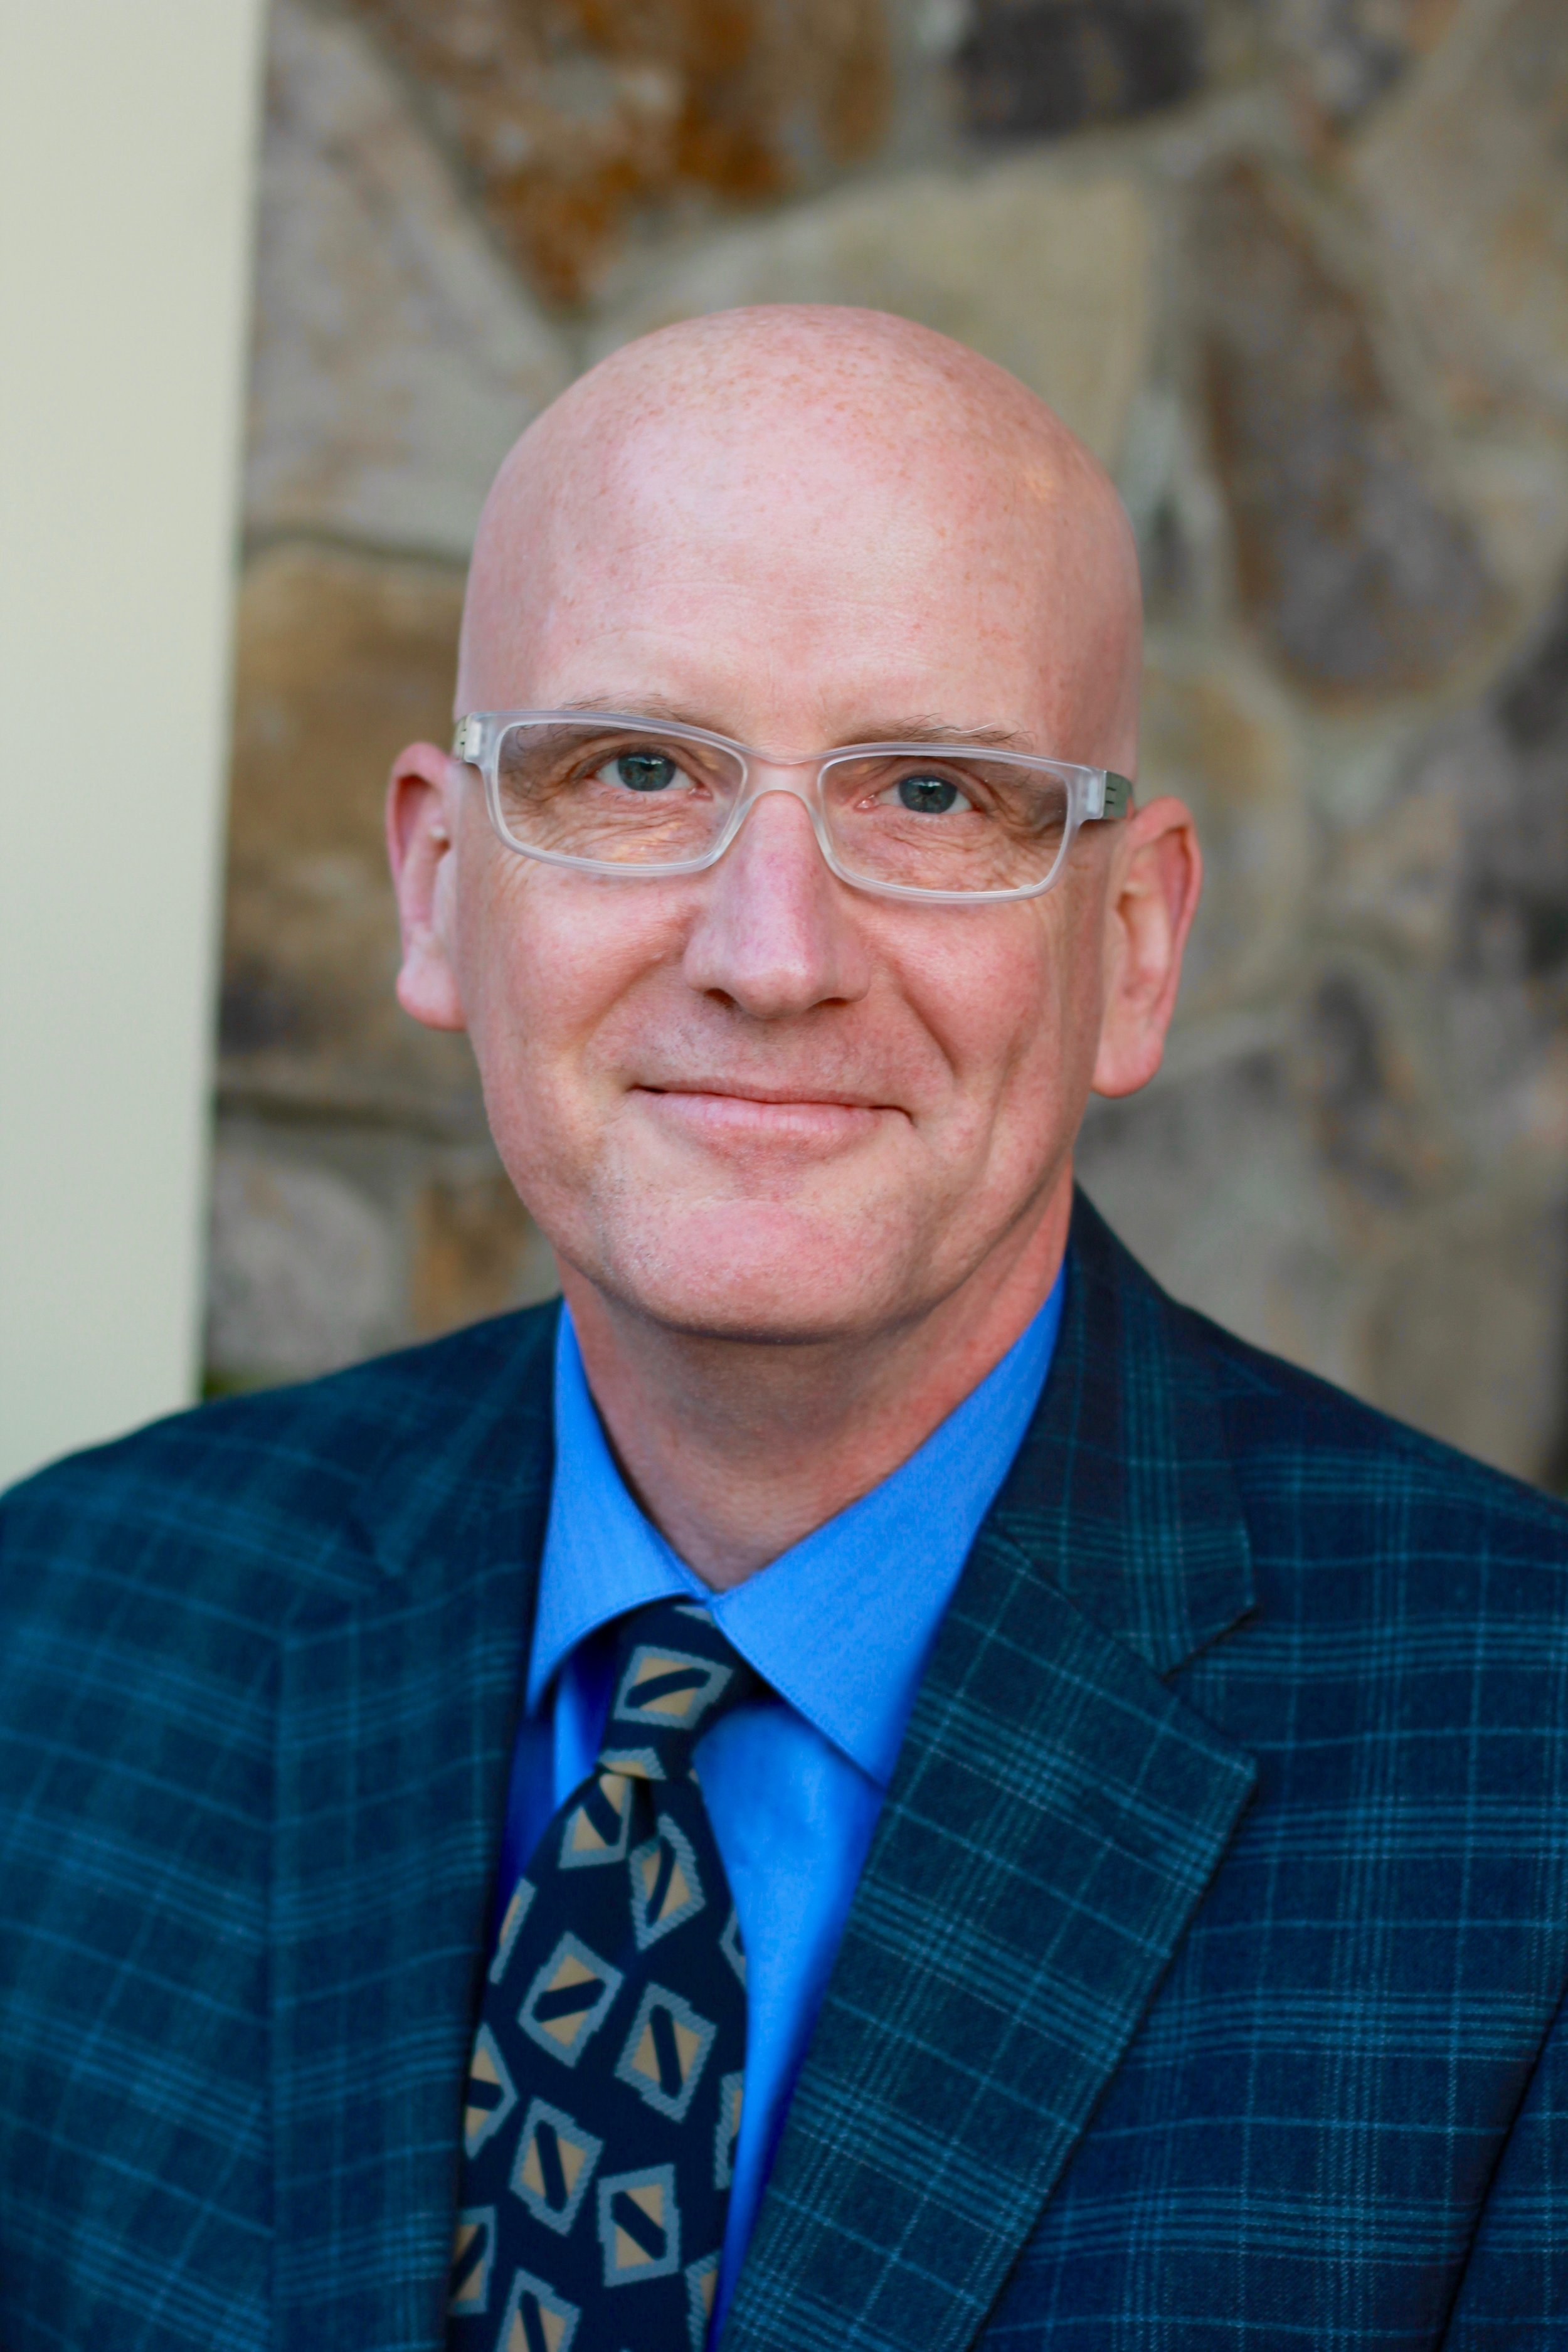 Dr. Daniel Willingham, Psychology Professor at University of Virginia and Author of   Why Don't Students Like School? ,   When Can You Trust the Experts?  ,  Raising Kids Who Read  . and   The Reading Mind   .